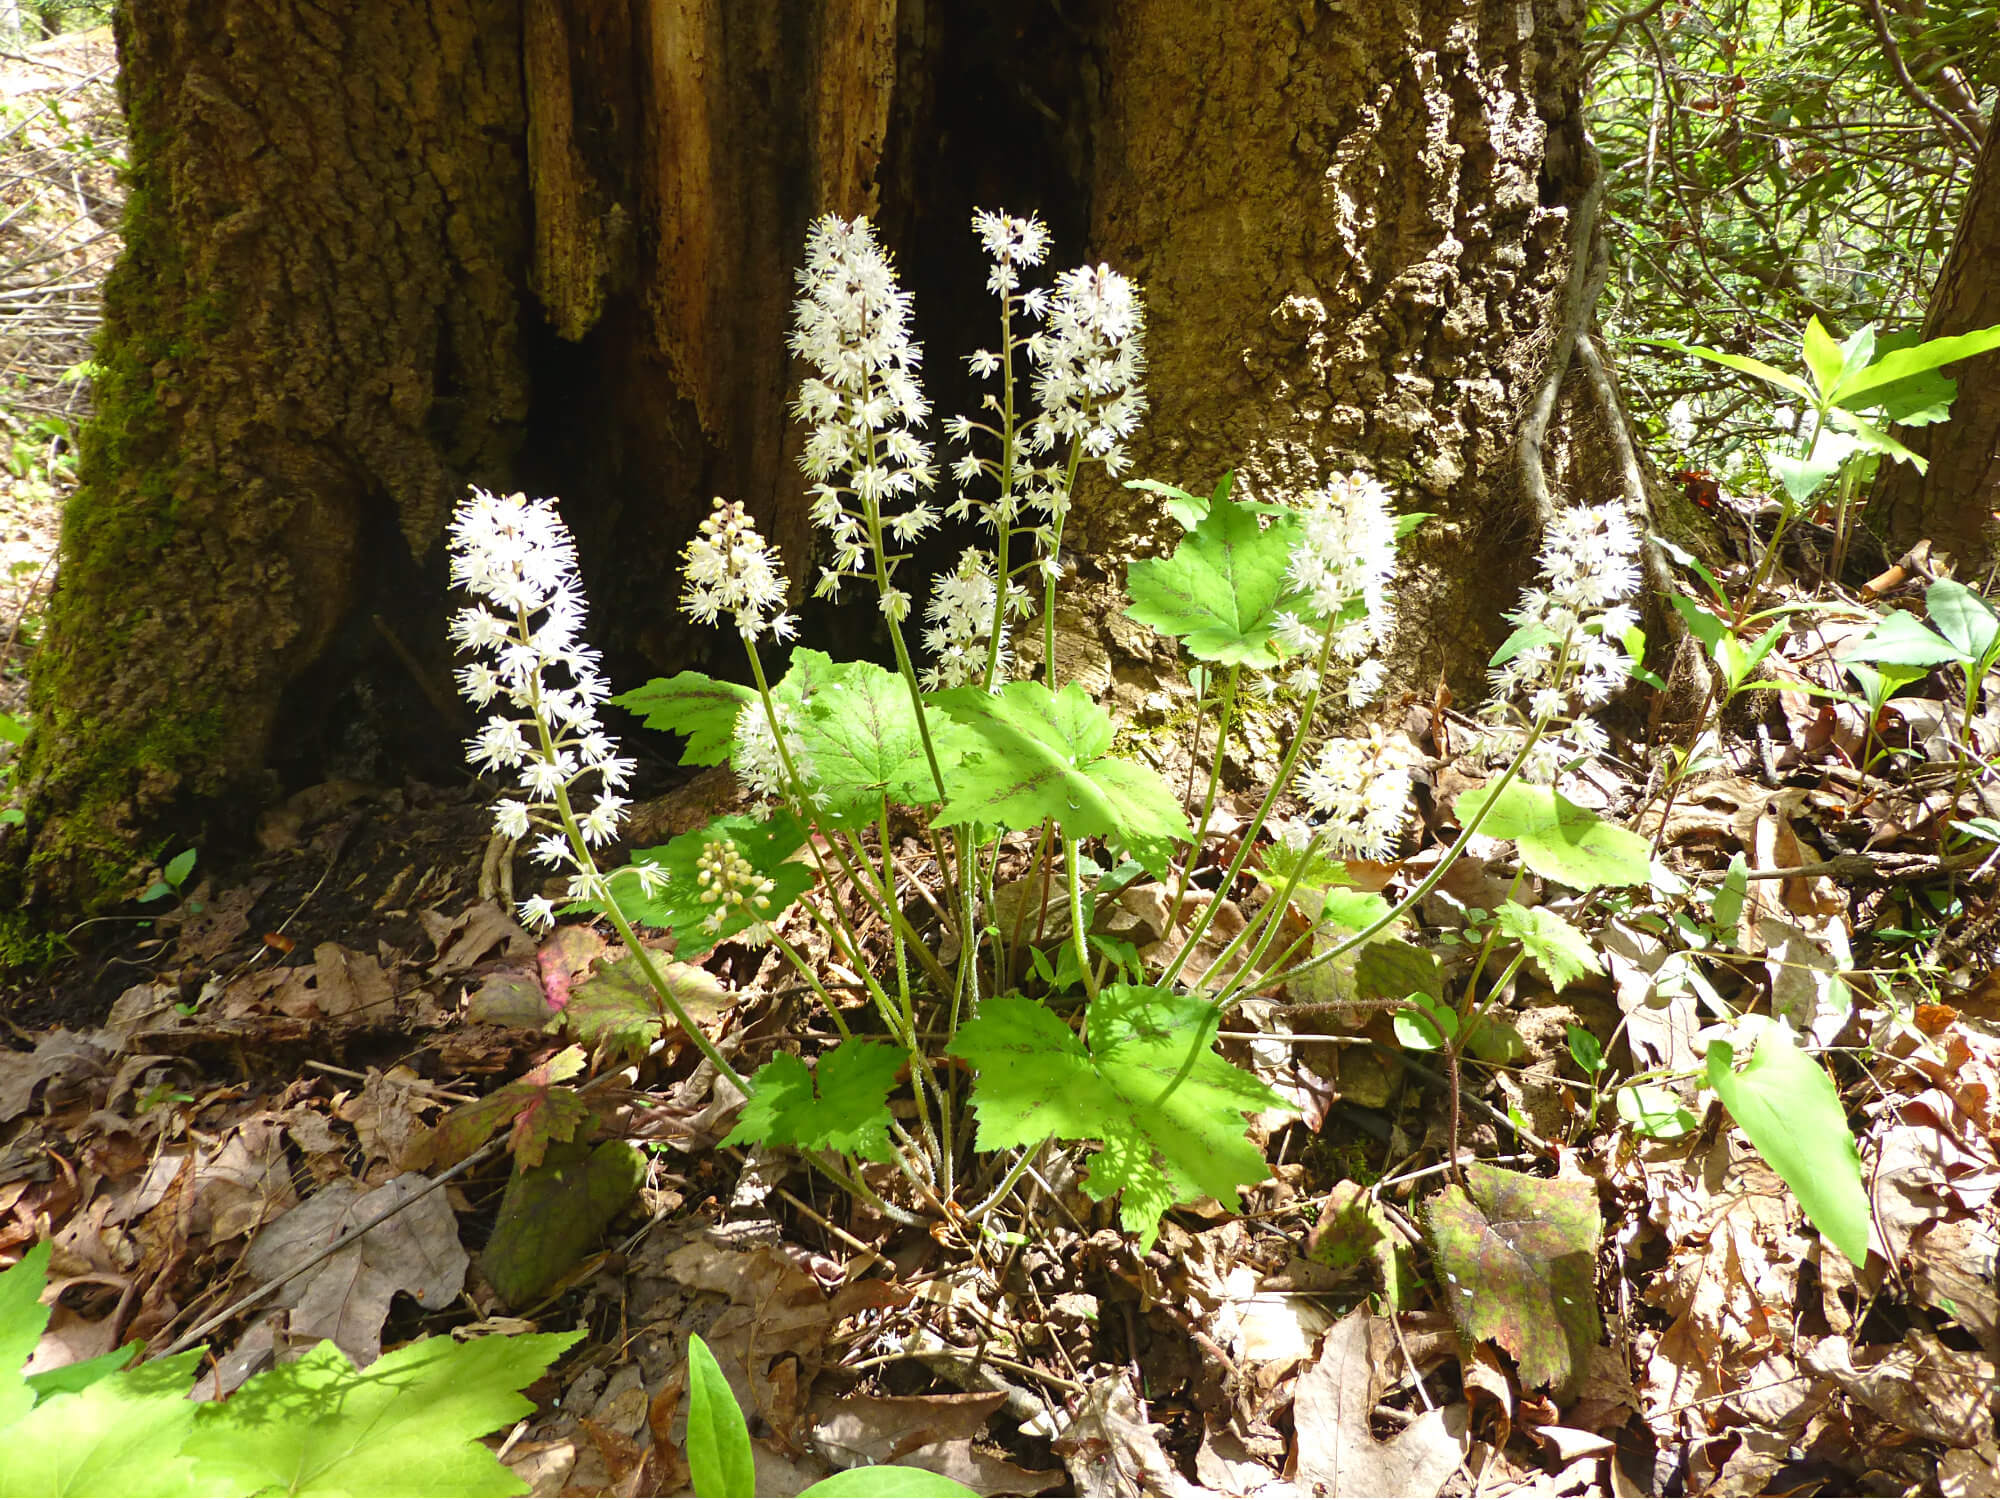 Small plant at the base of a mossy tree with flower stalks that have white flower clusters